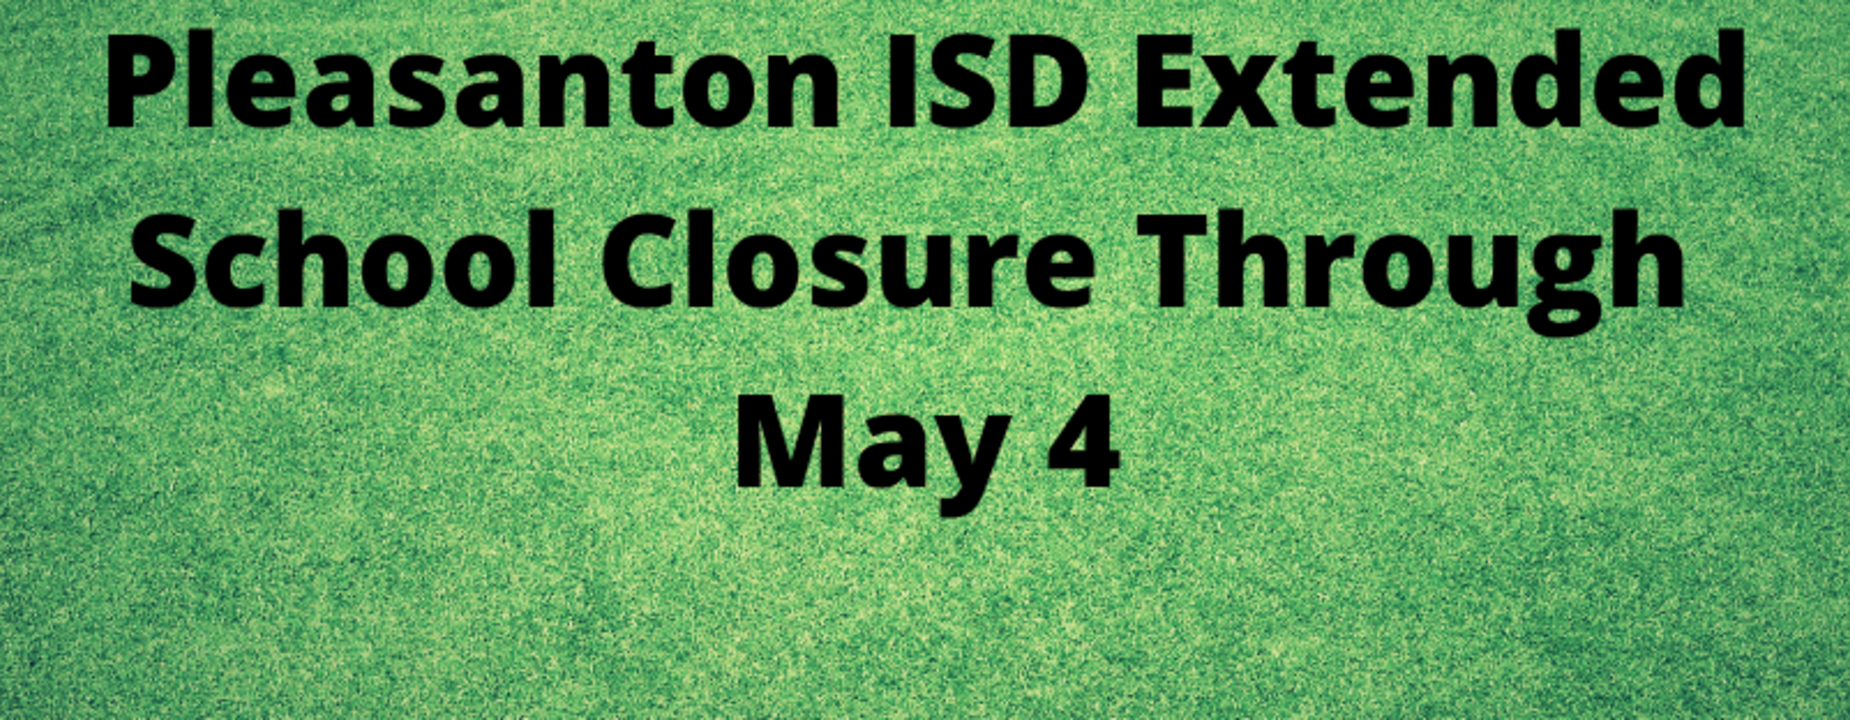 May 4 Extended School Closure